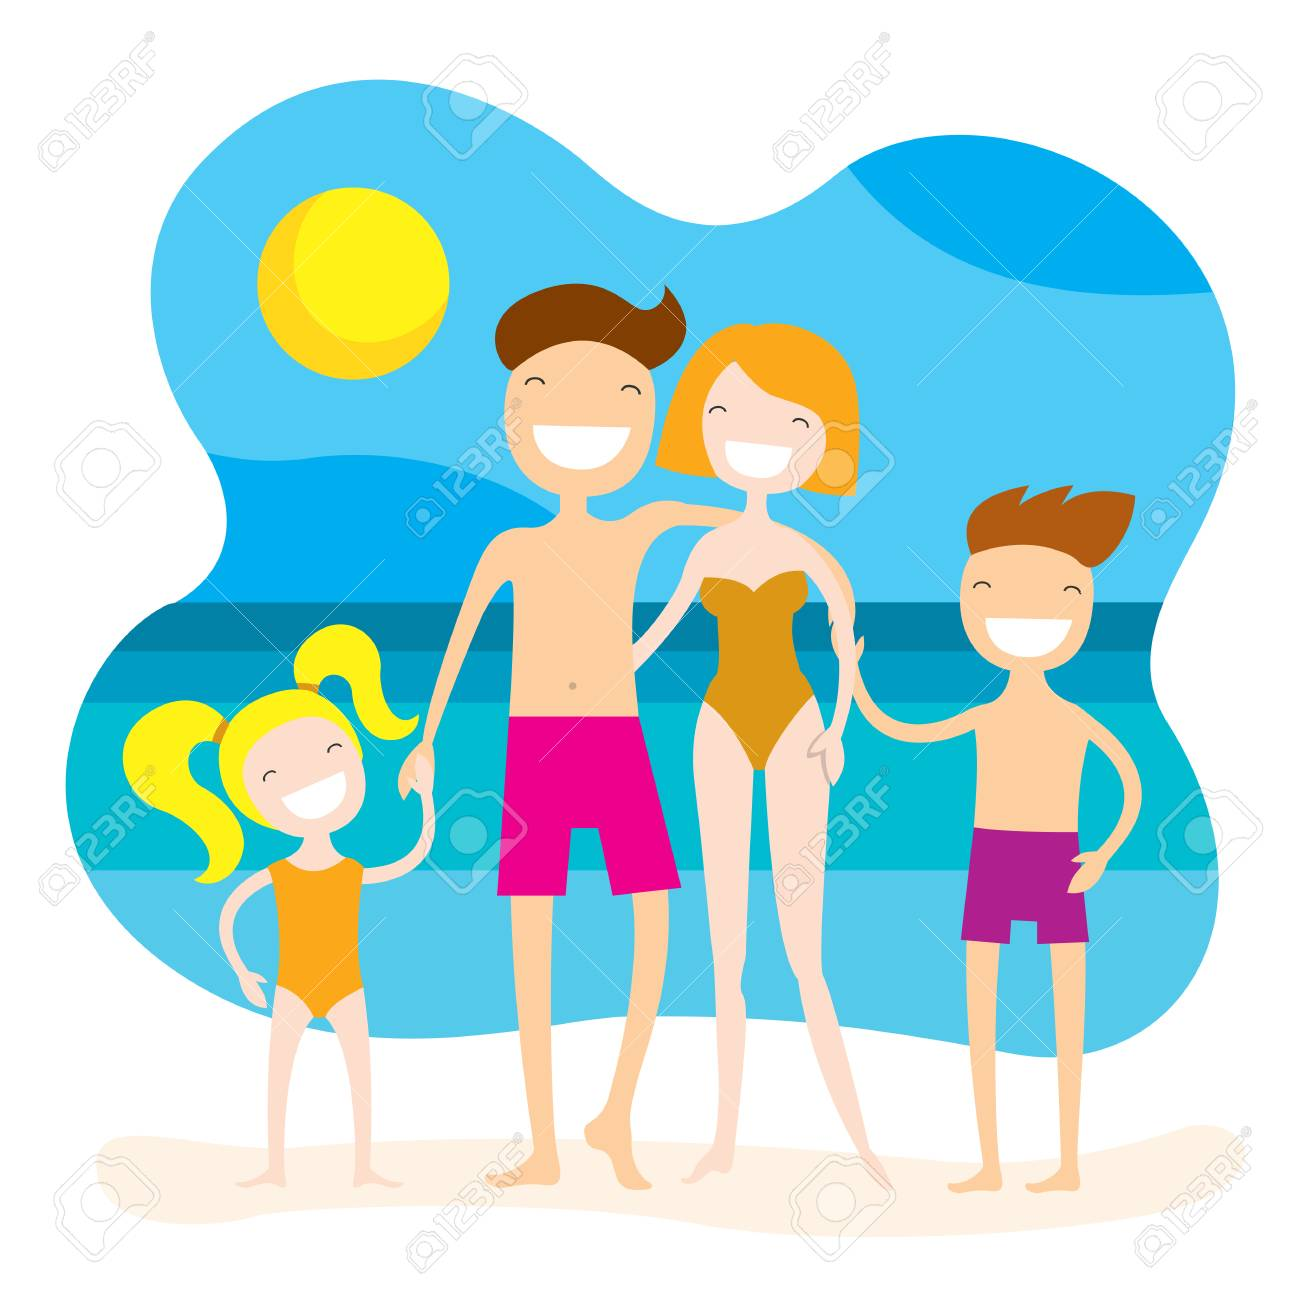 Happy Family On The Beach Summer Vacation Holidays By The Sea Stock Photo Picture And Royalty Free Image Image 105812666